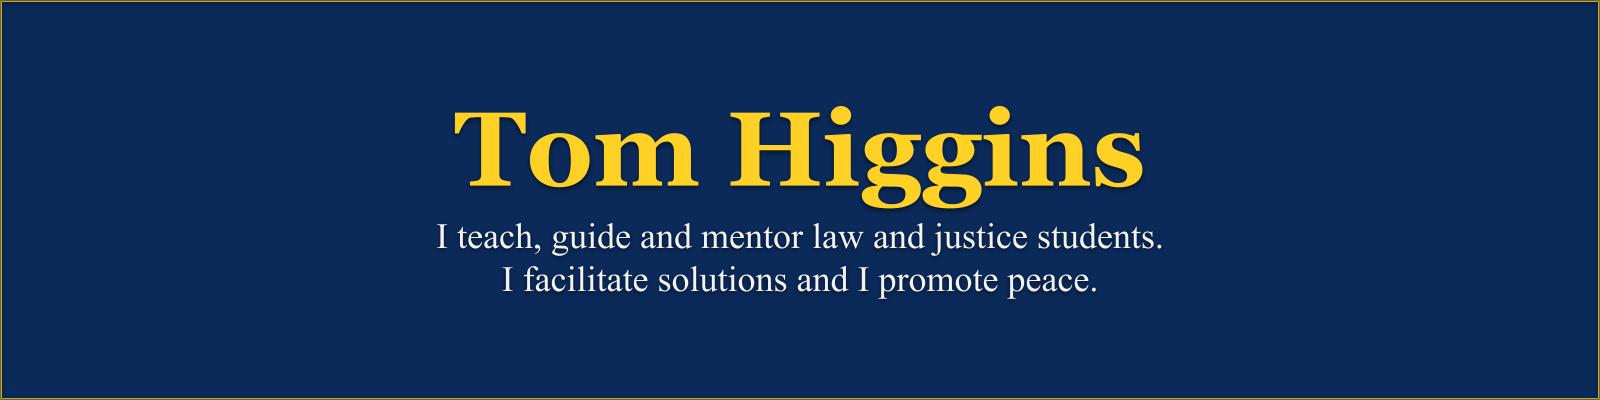 Tom Higgins, Higgins Law